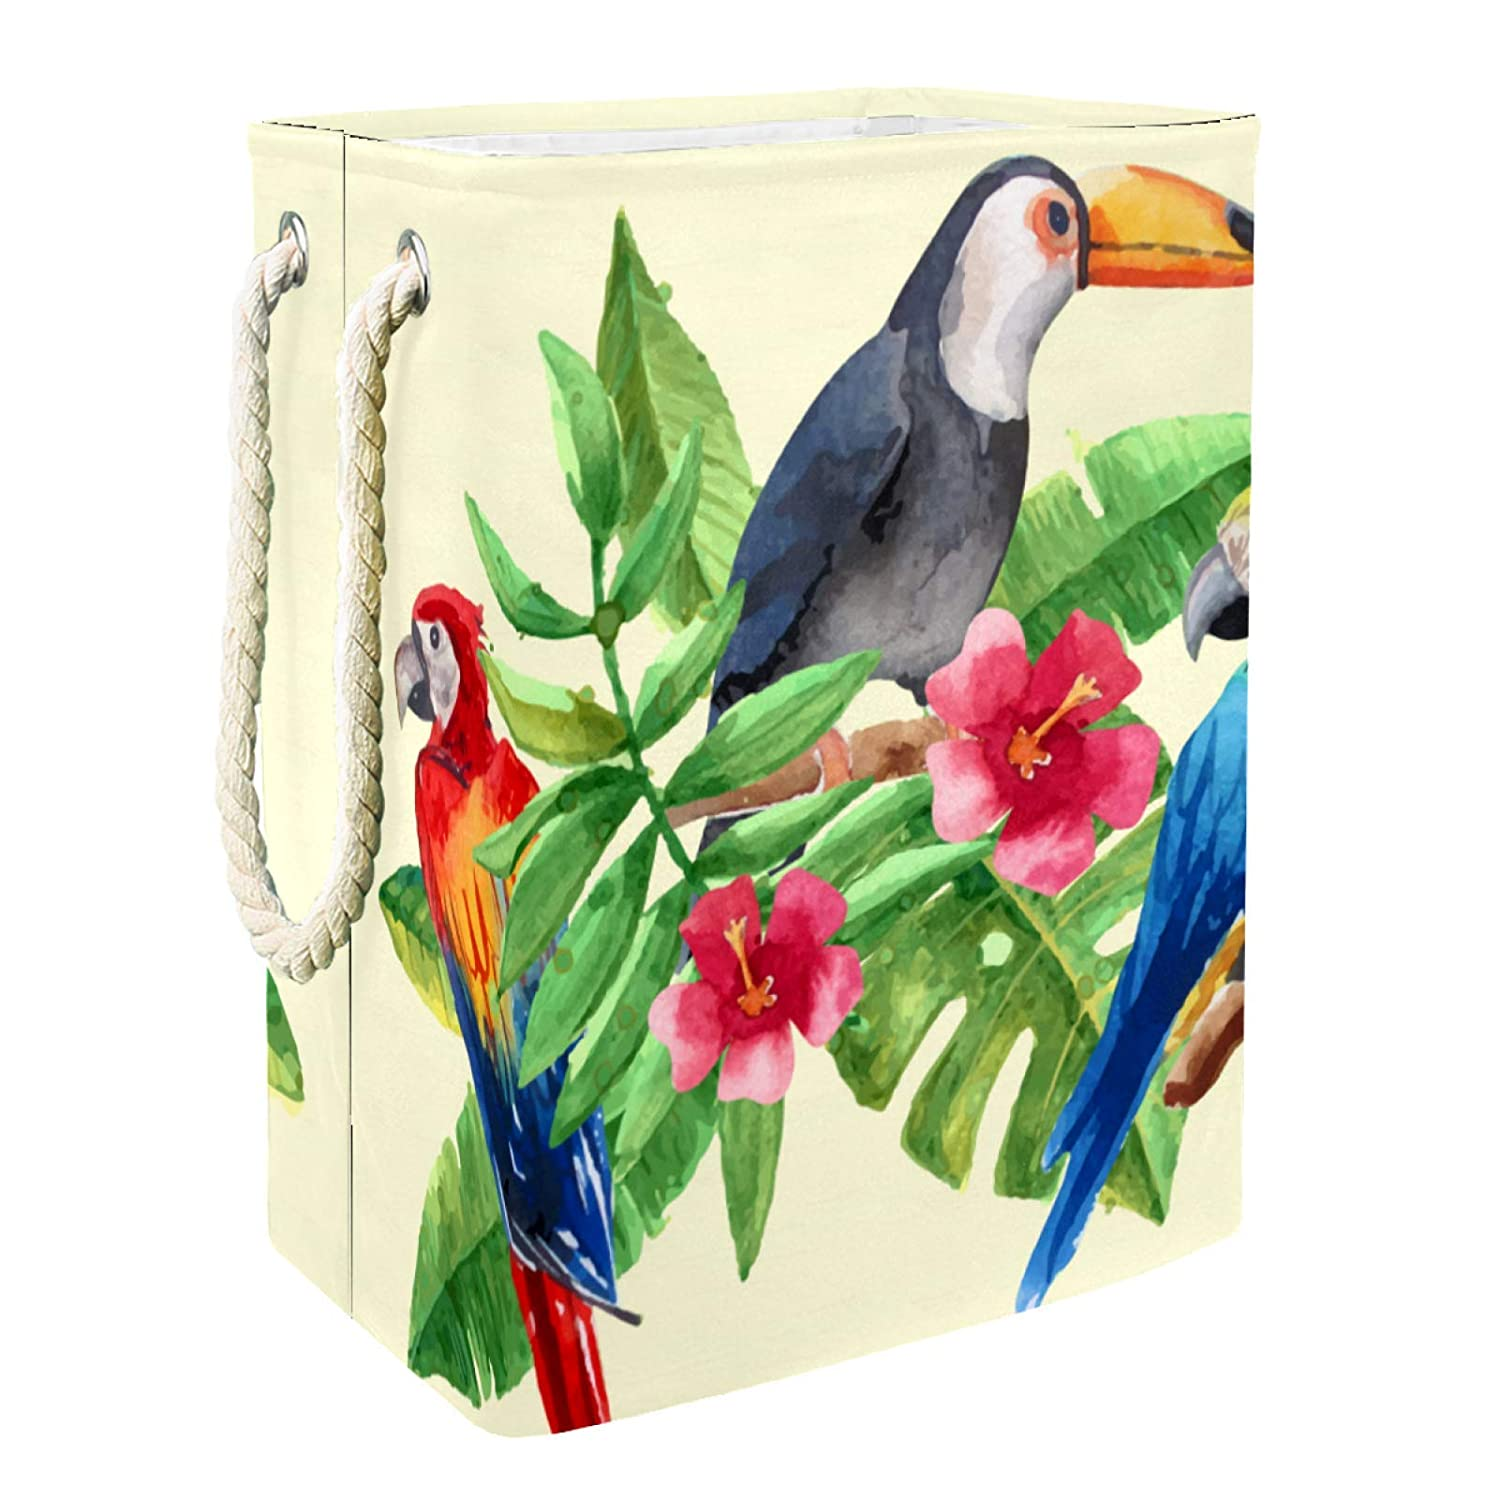 Storage Basket Tropical Max 43% OFF Parrot Toucan Palm Leaves Bin Ches Max 53% OFF Birds